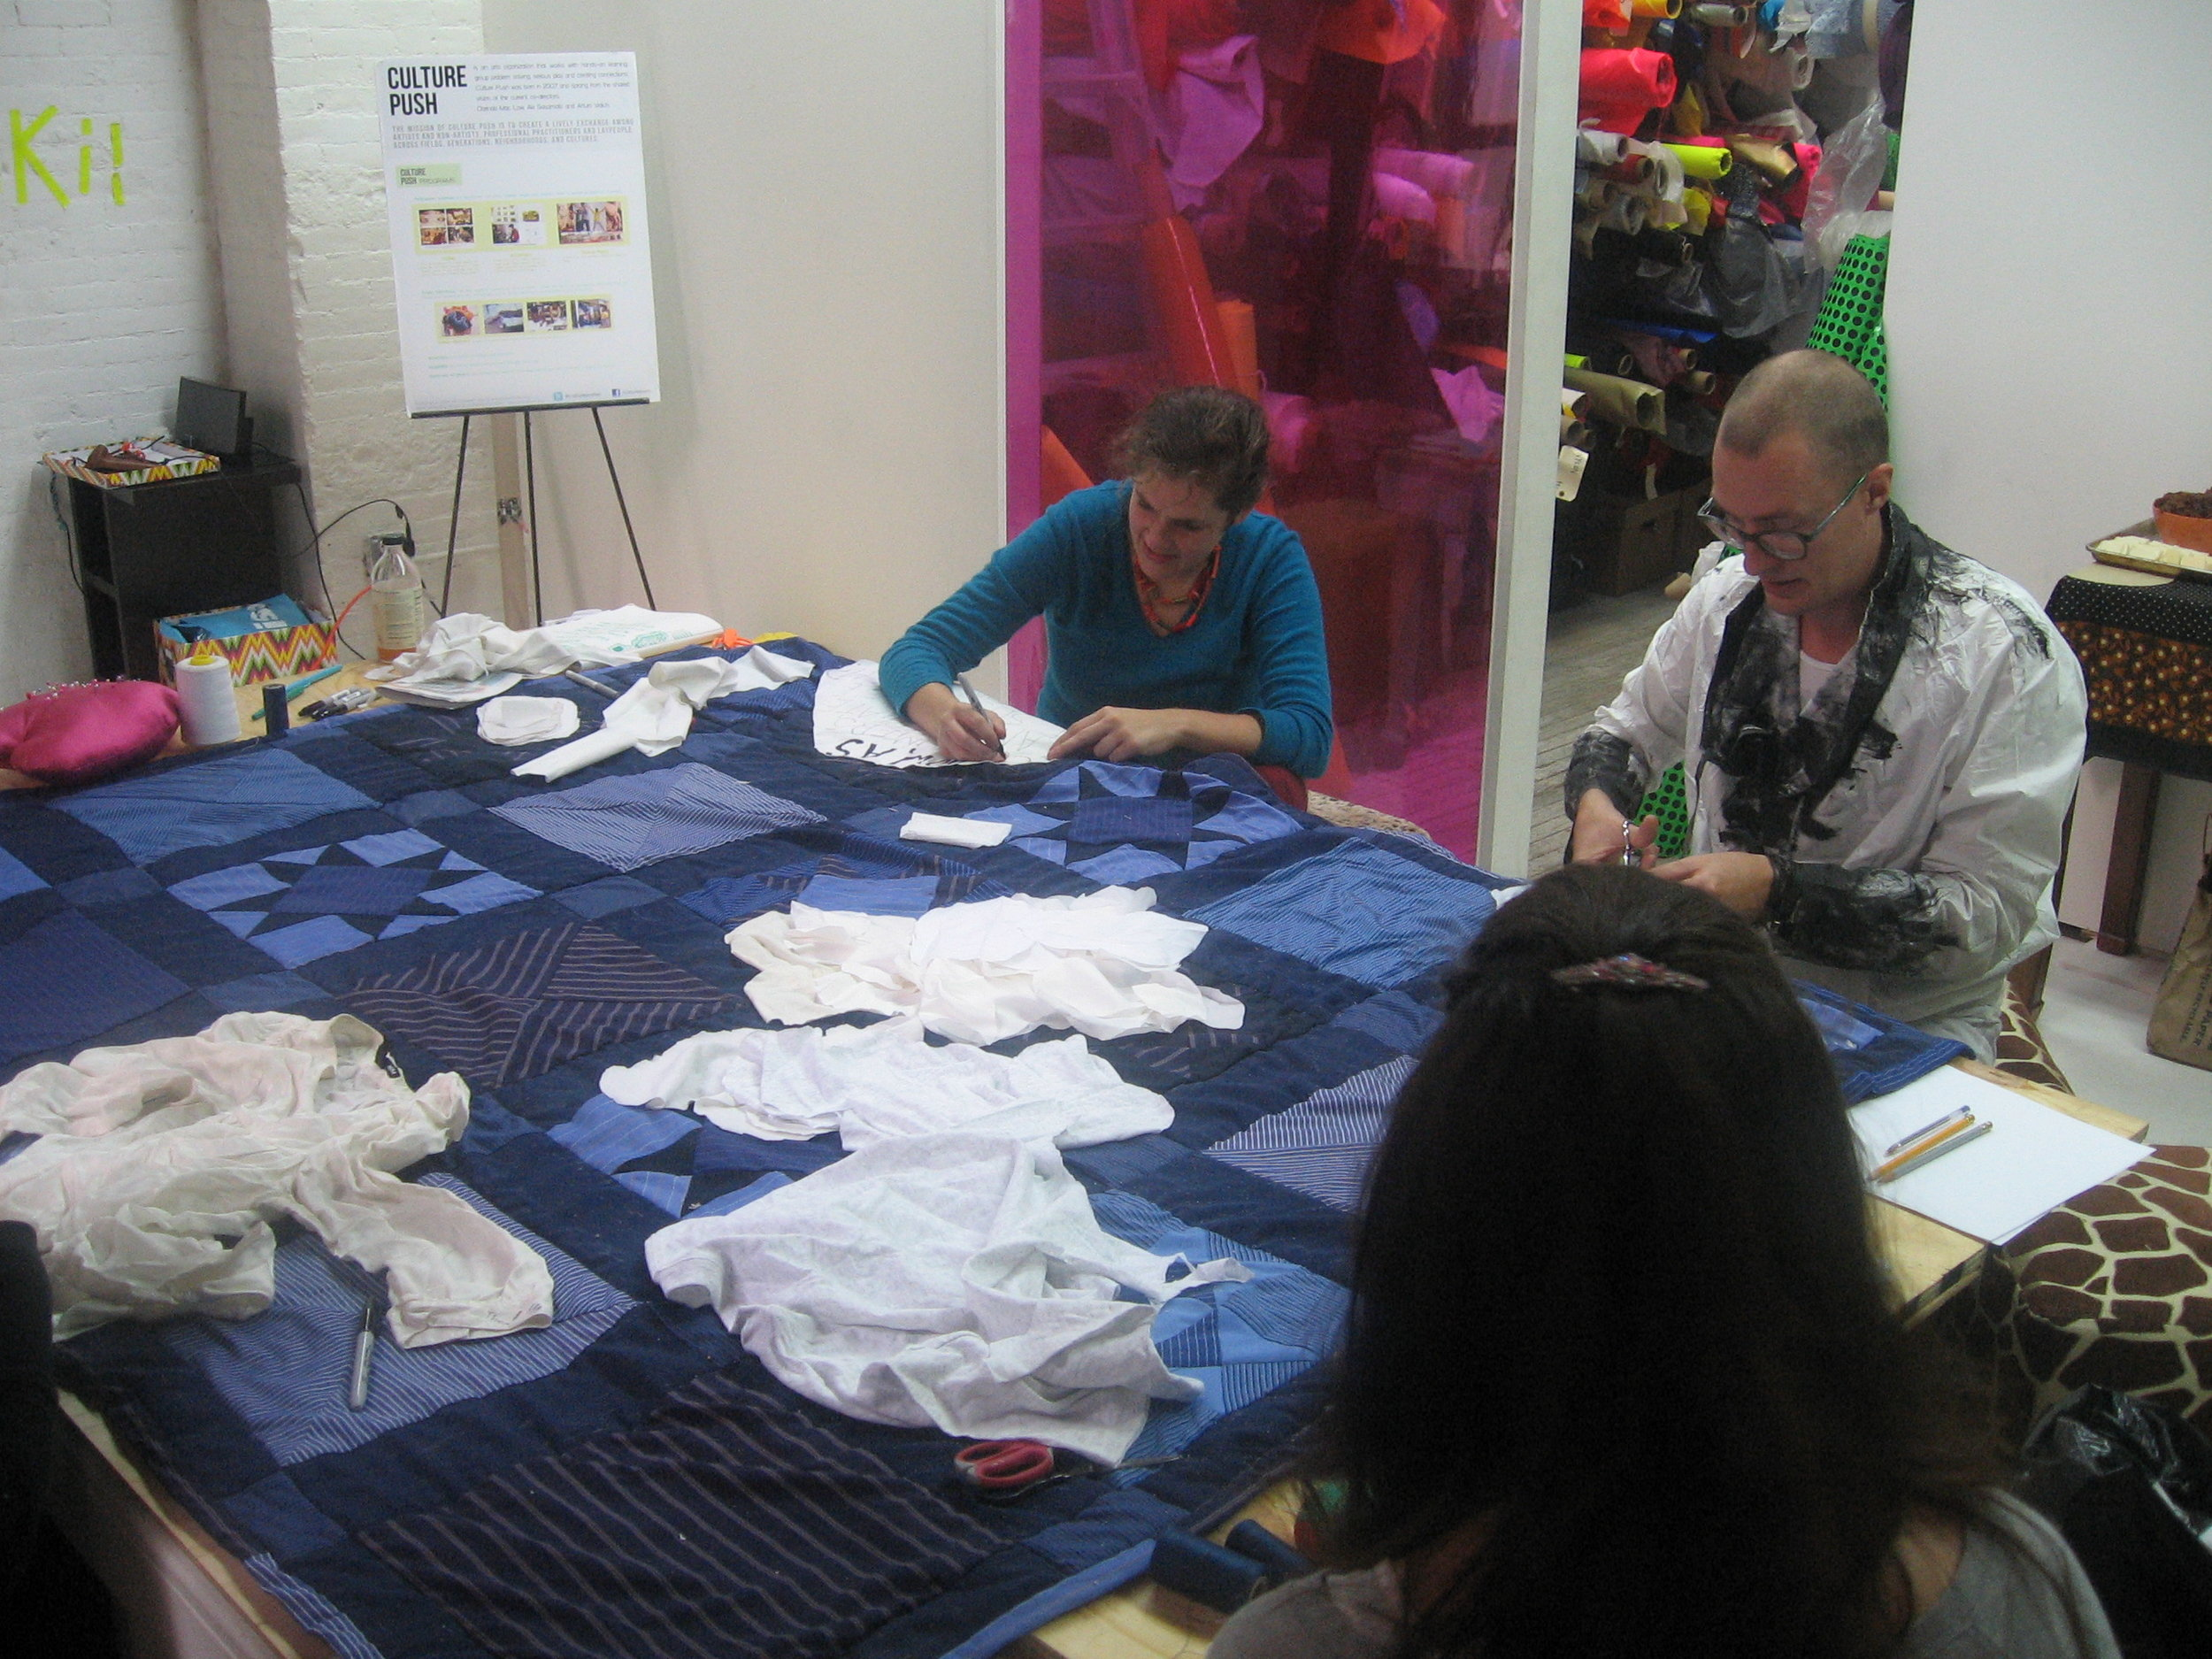 working-on-the-quilt_6293312464_o.jpg